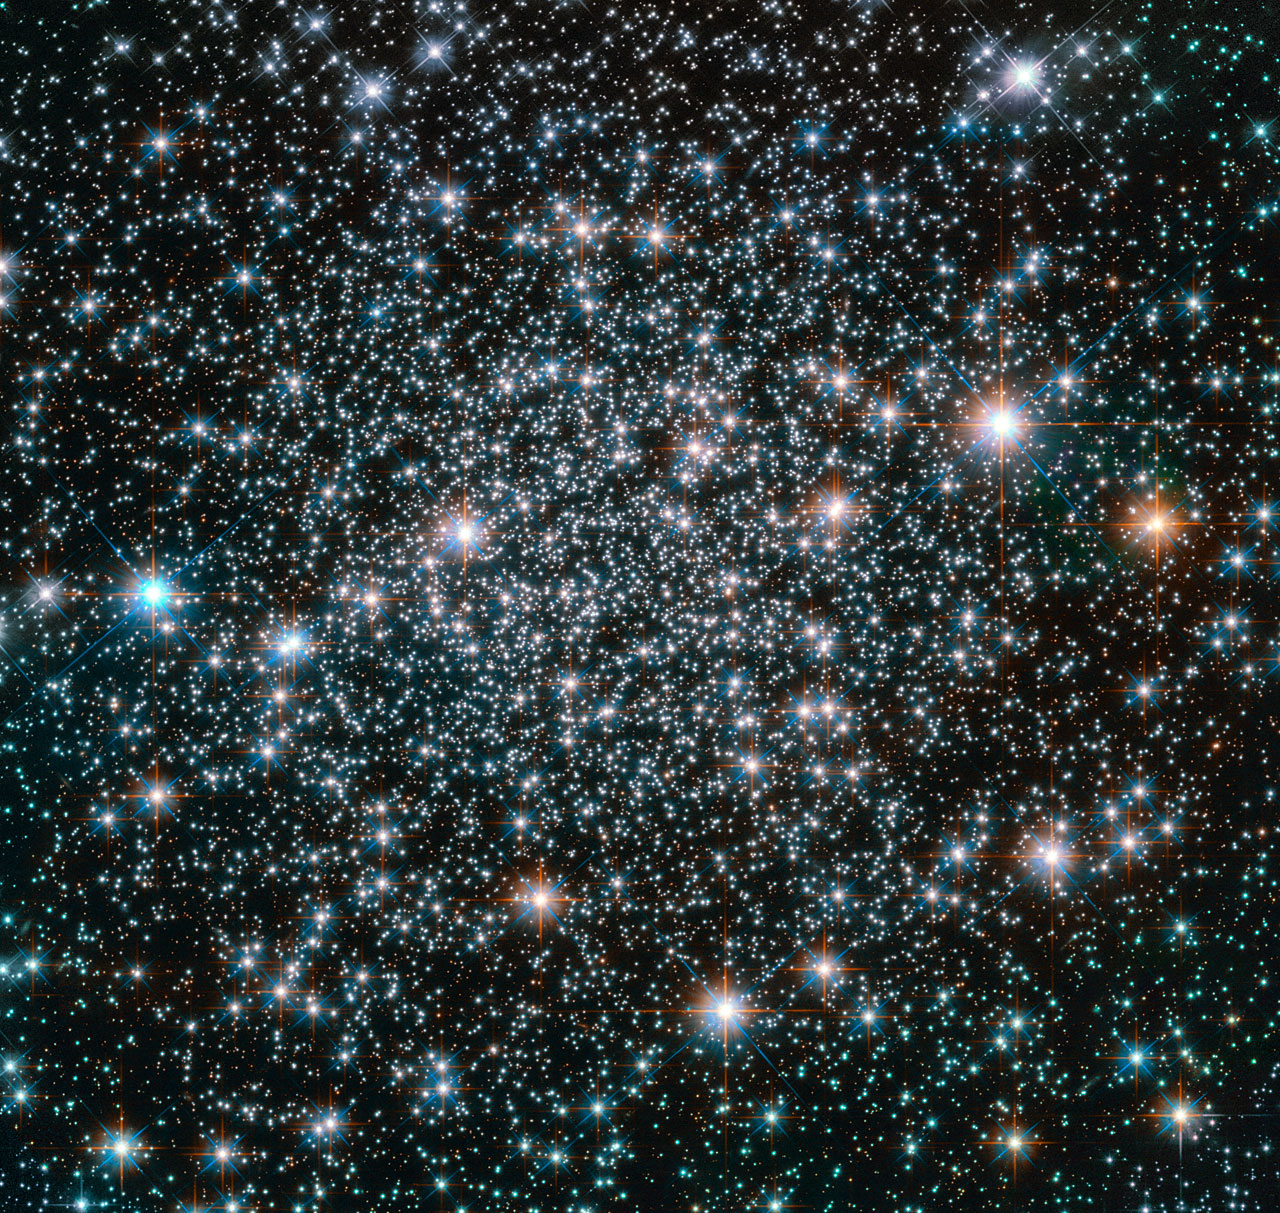 Star cluster NGC6496